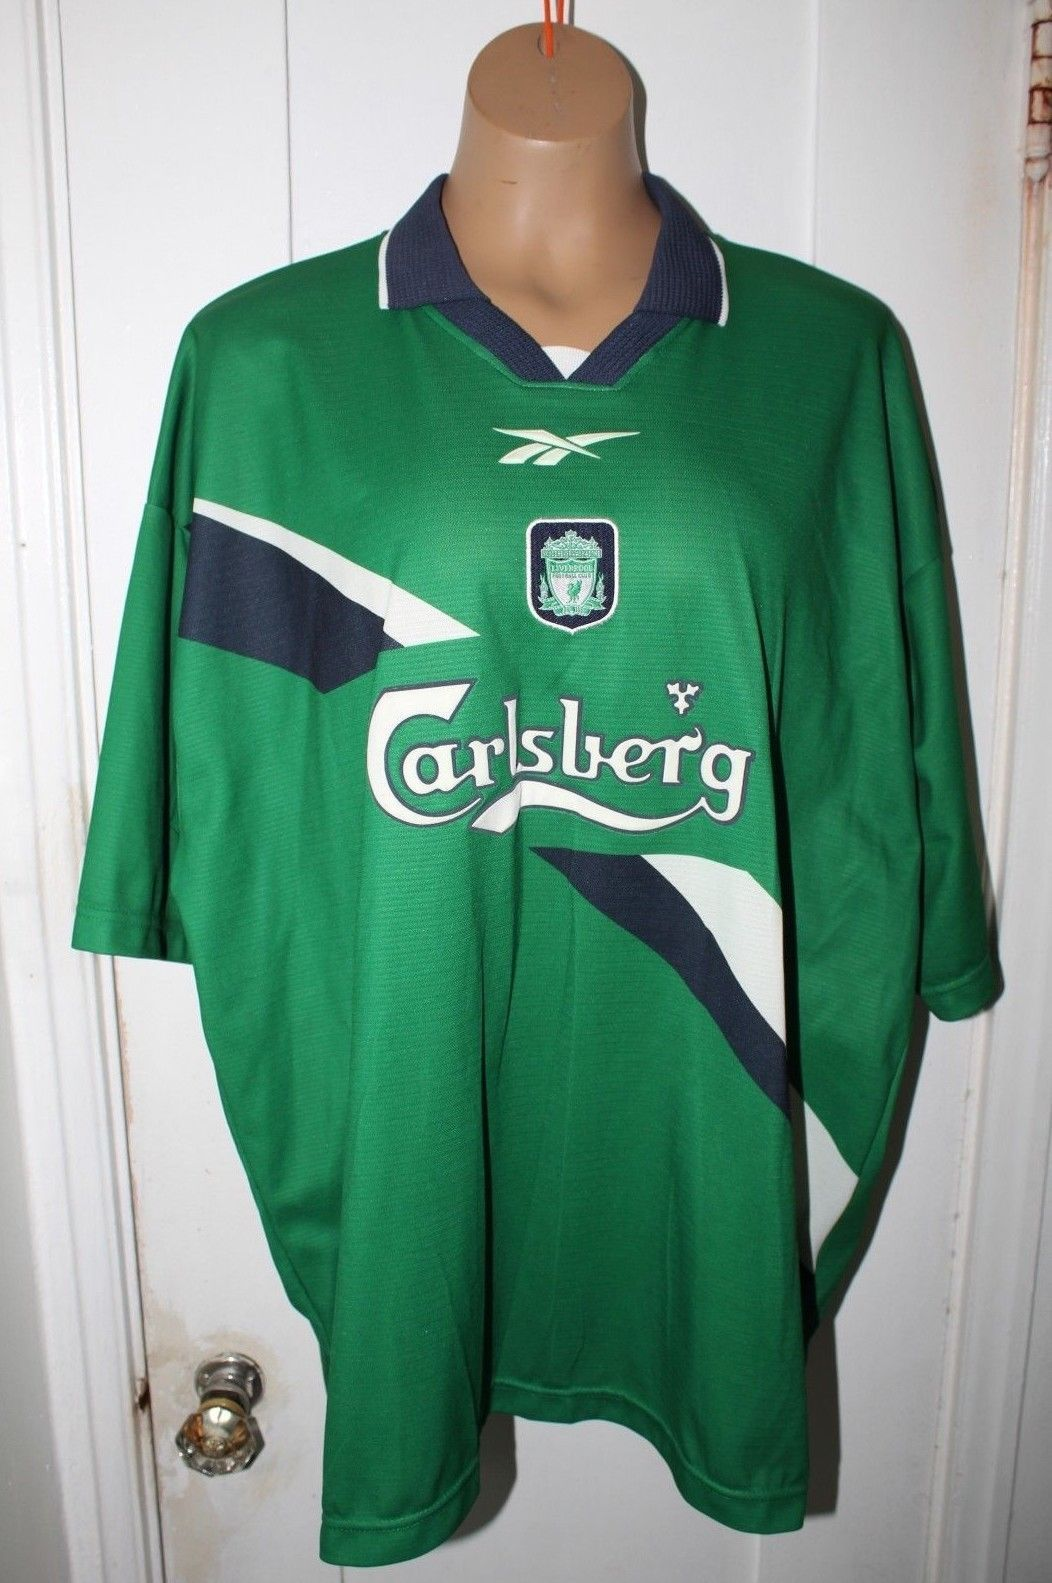 9332e115de3 Vintage Liverpool Shirts Ebay – EDGE Engineering and Consulting Limited